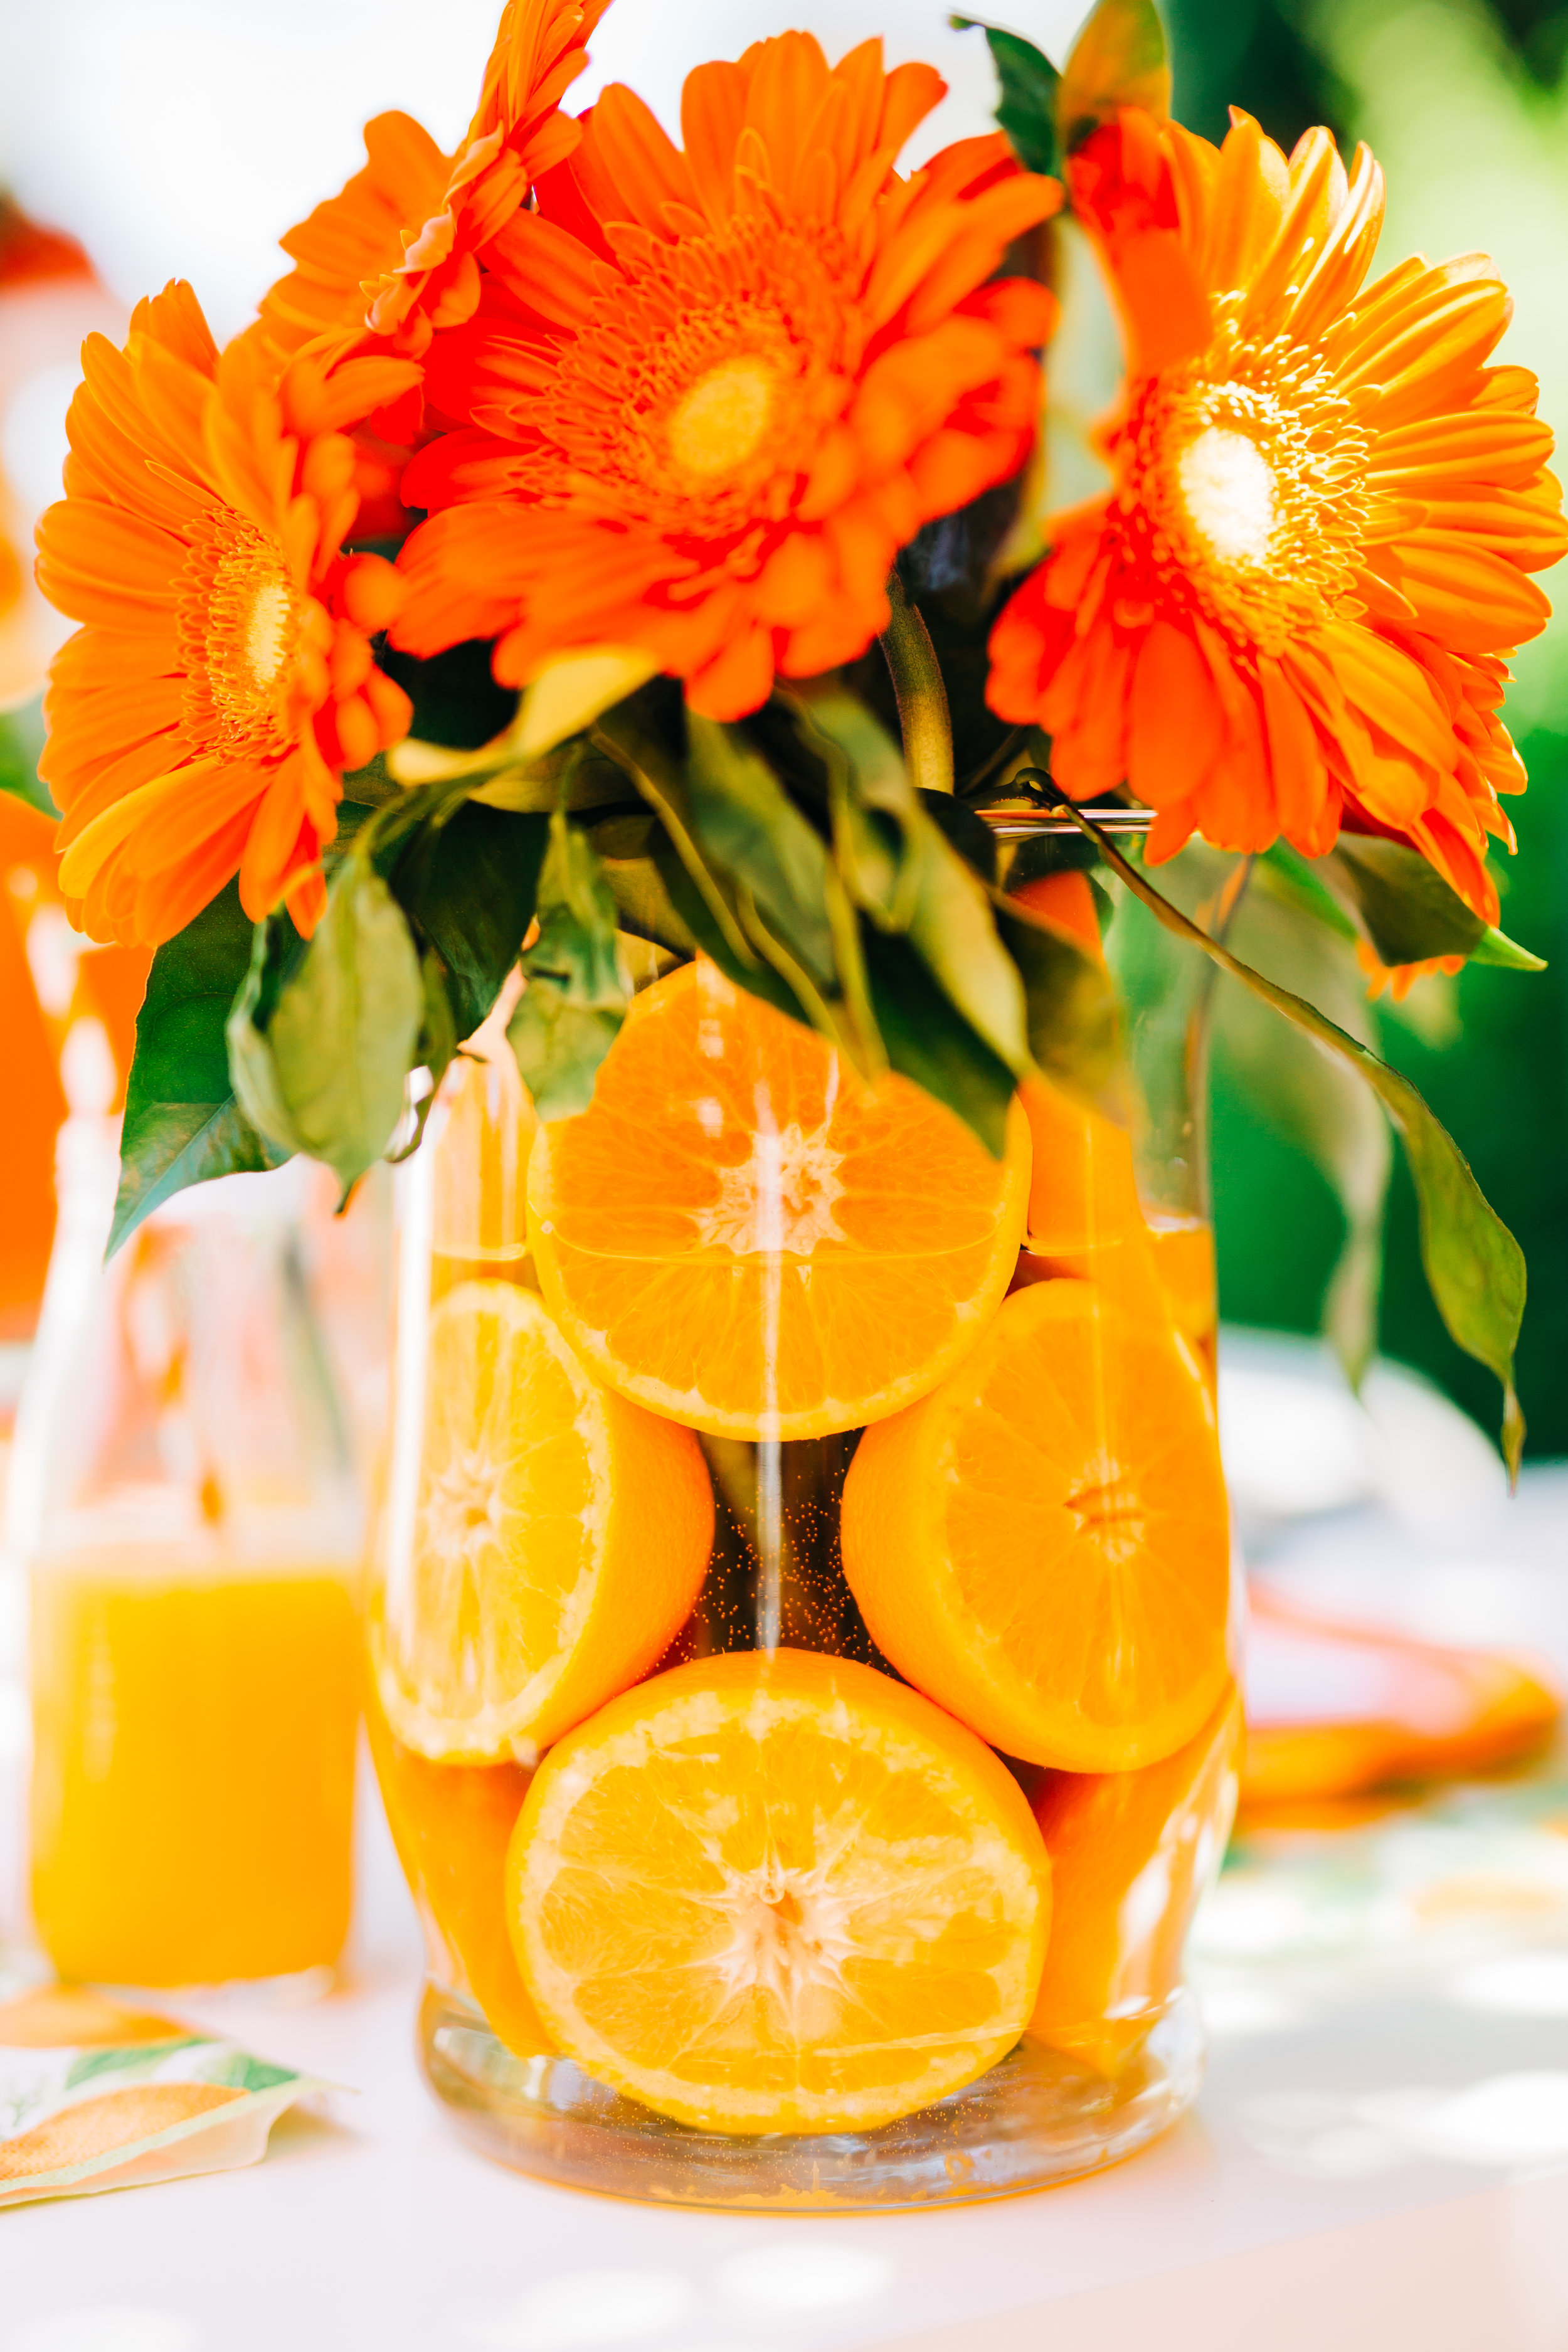 flower arrangement with real oranges from orange tree for orange picking party 5.jpg